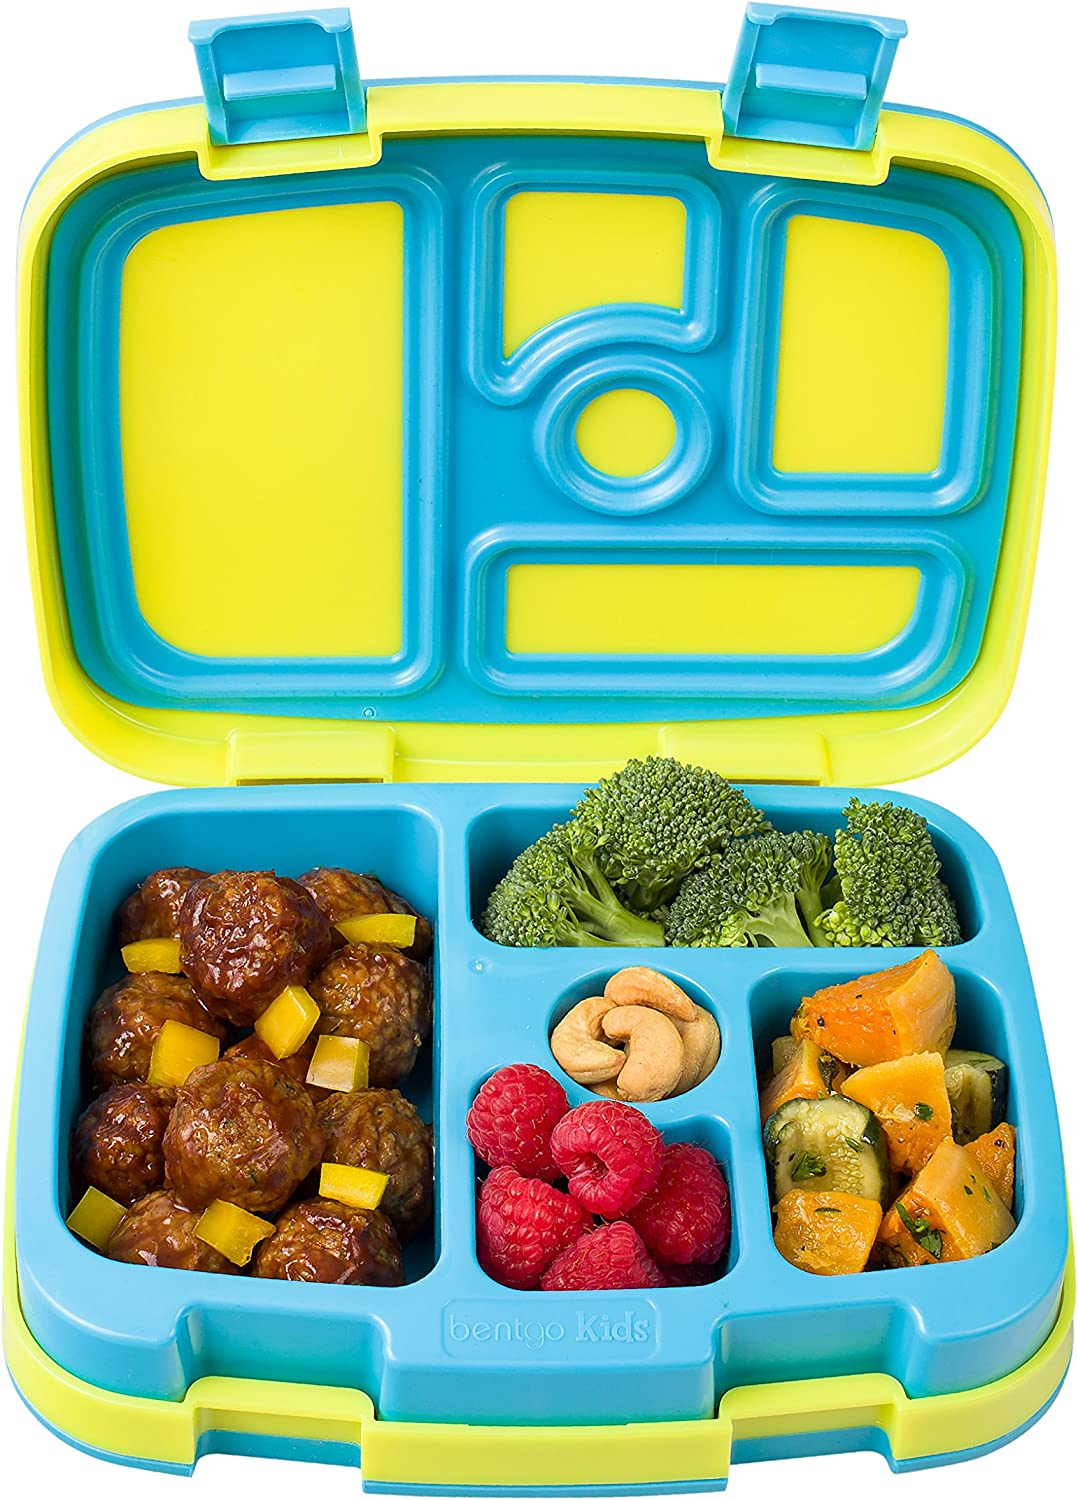 Bentgo Kids Brights Leak-Proof 5-Compartment Bento-Style Kids Lunch Box –